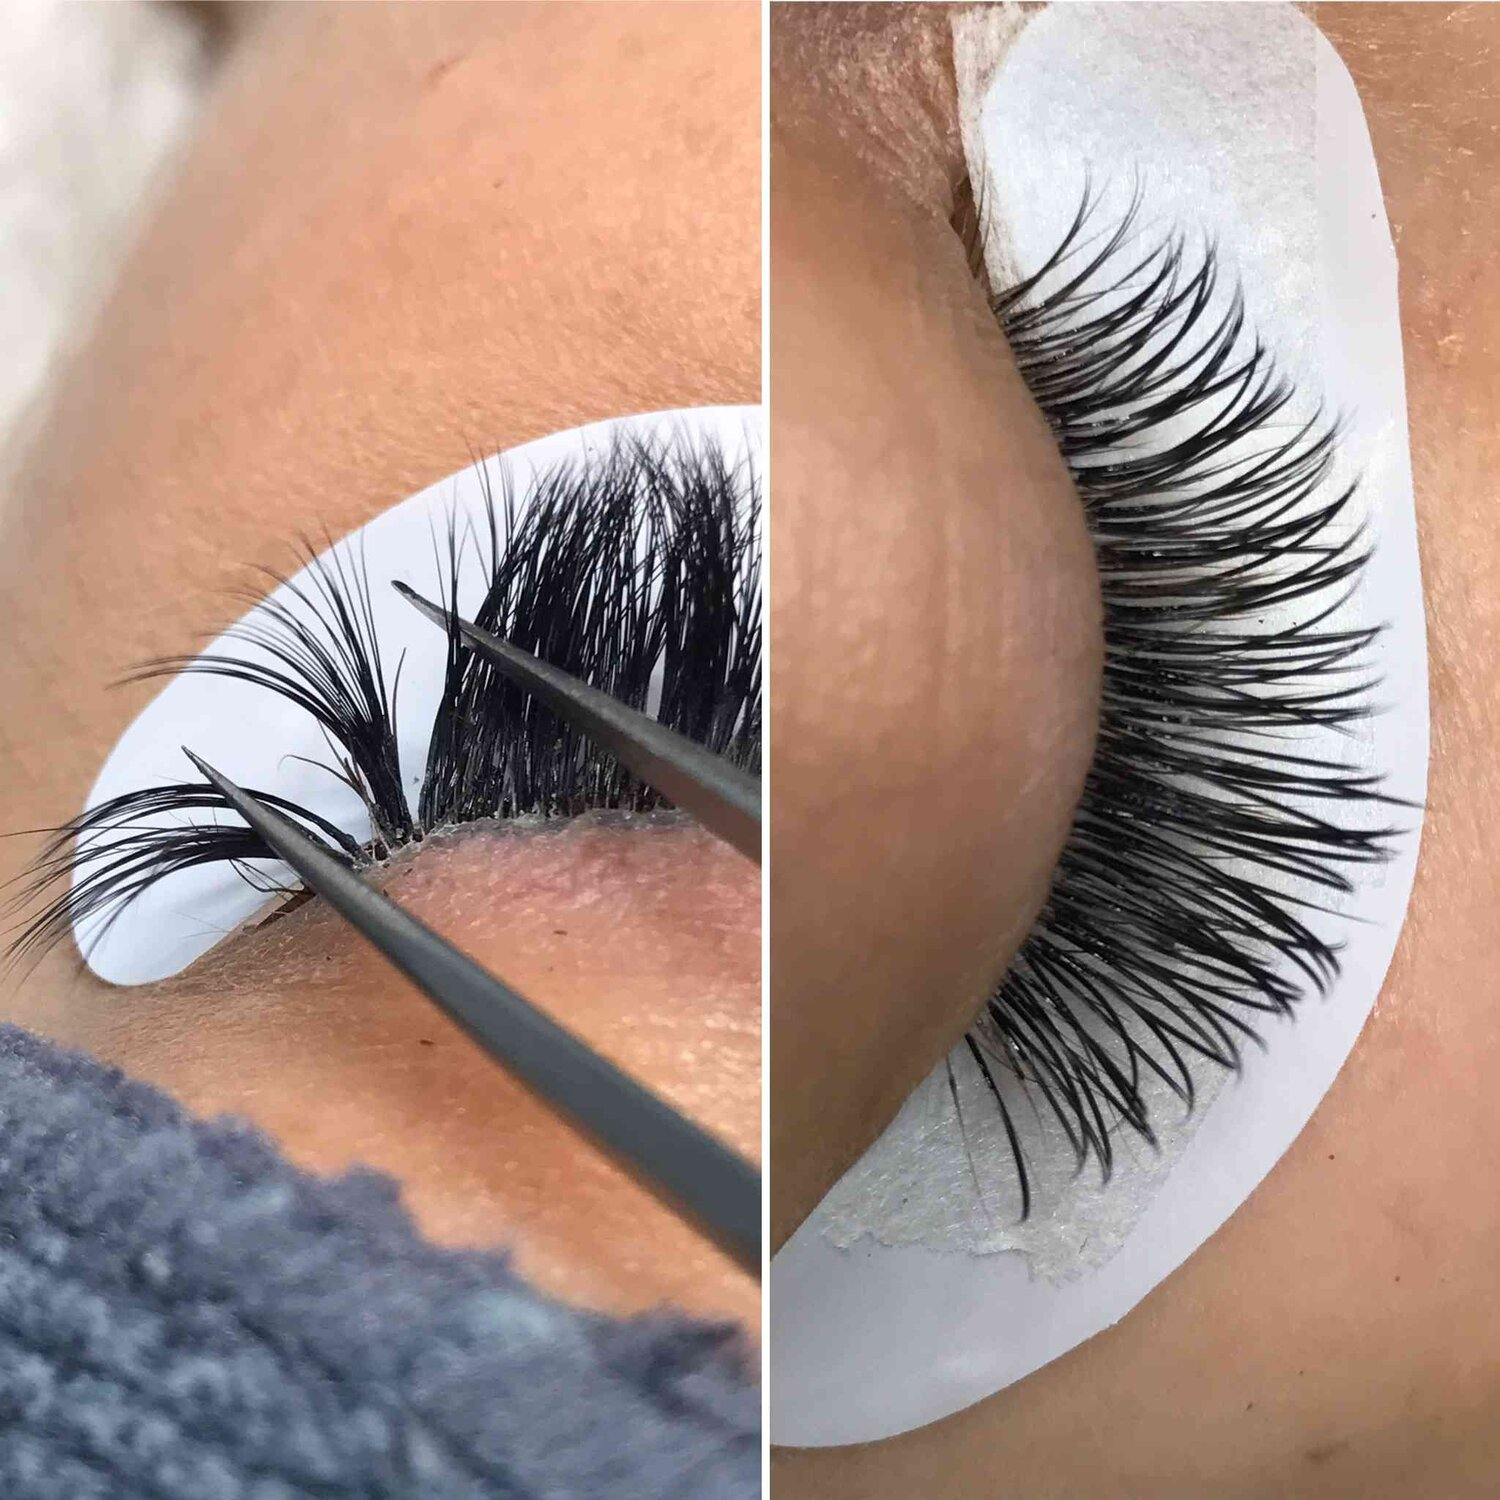 The image on the left shows an example of a client who came to us with poorly applied lash extensions - six natural eyelashes are stuck together with way too much glue applied and also sticking to eyelid skin causing irritation and pain. The image on the right shows how lash extensions should be applied when done professionally - fully isolated and close to, but not touching the skin with no irritation or swelling.